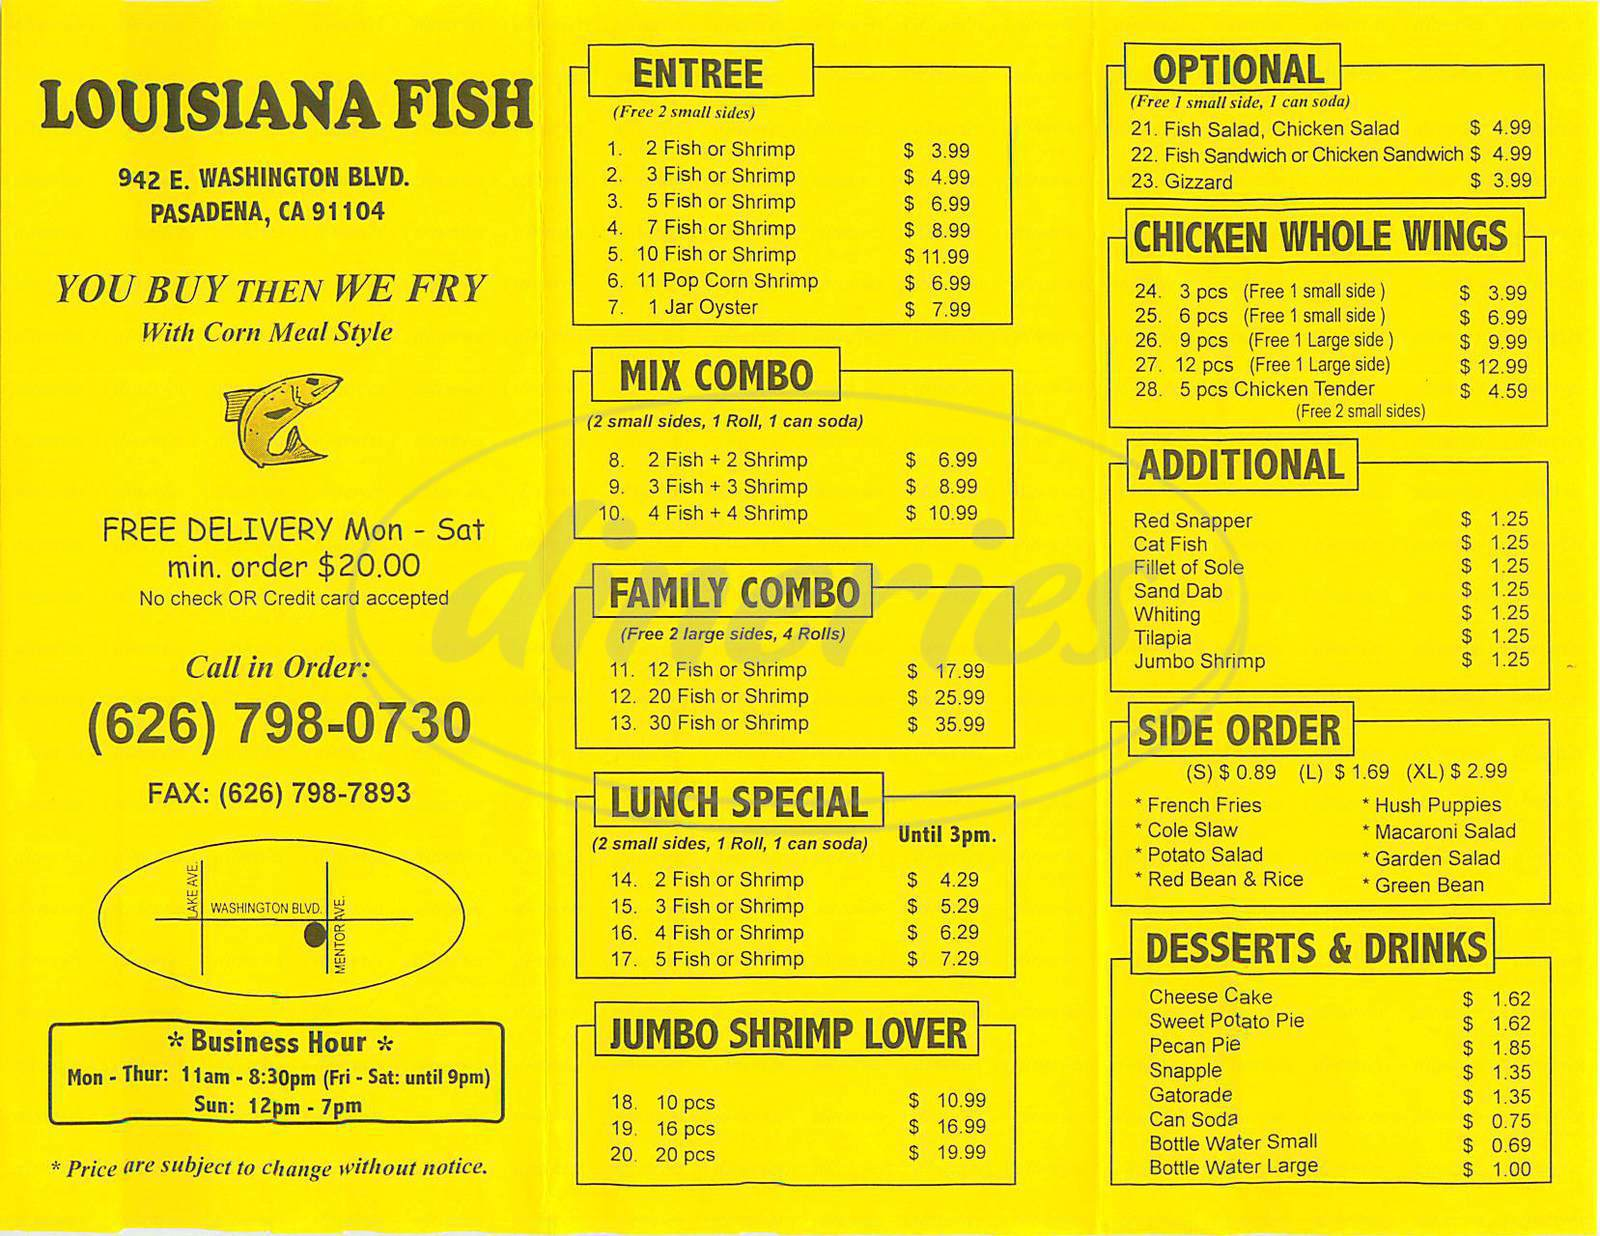 menu for Louisiana Fish